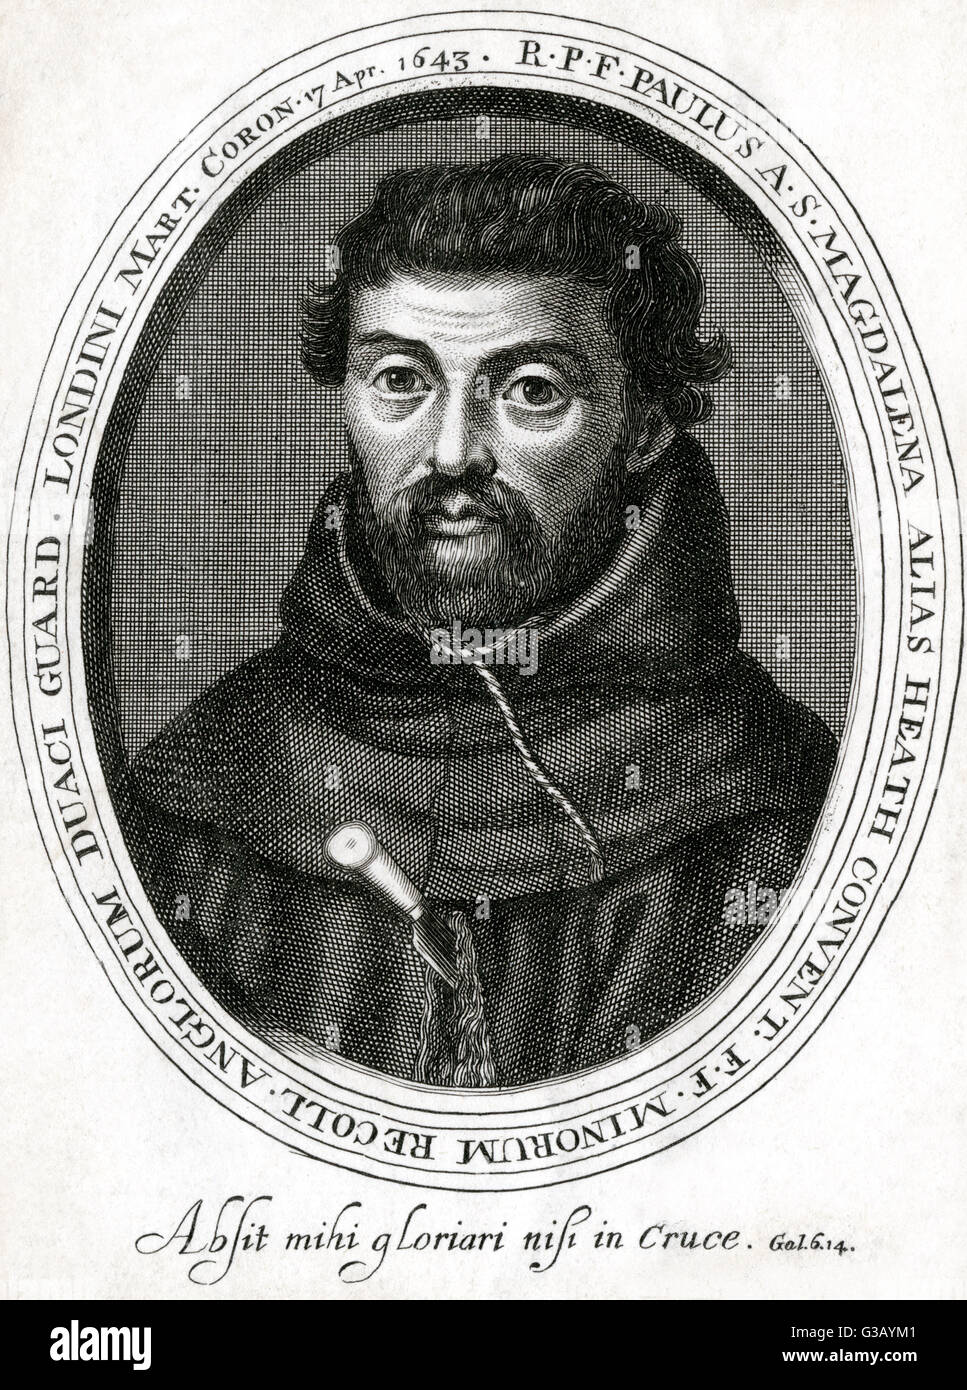 HENRY HEATH  Franciscan writer and martyr        Date: 1599 - 1643 - Stock Image